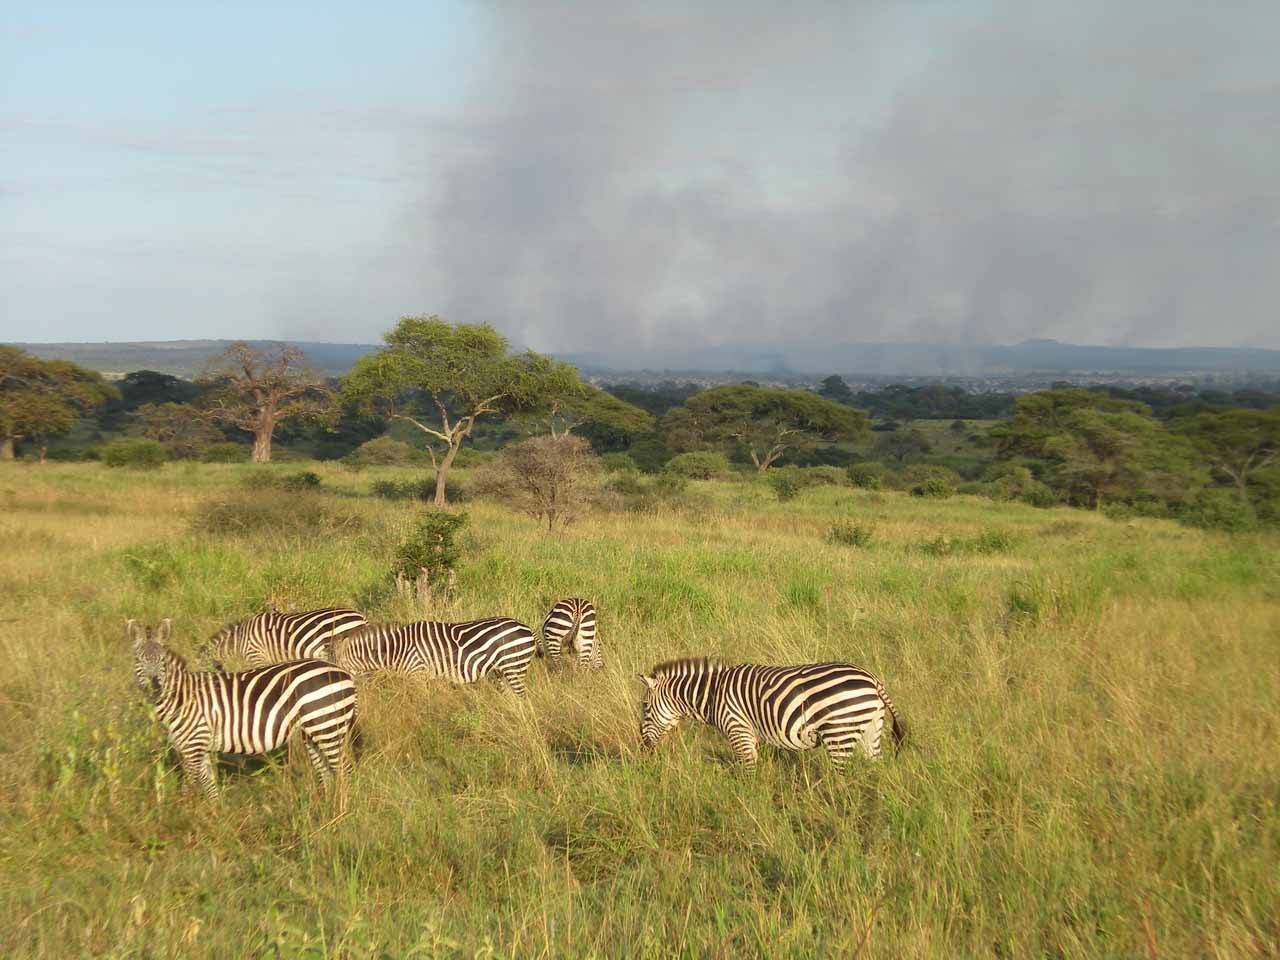 Fire in the background while zebras were grazing in the foreground